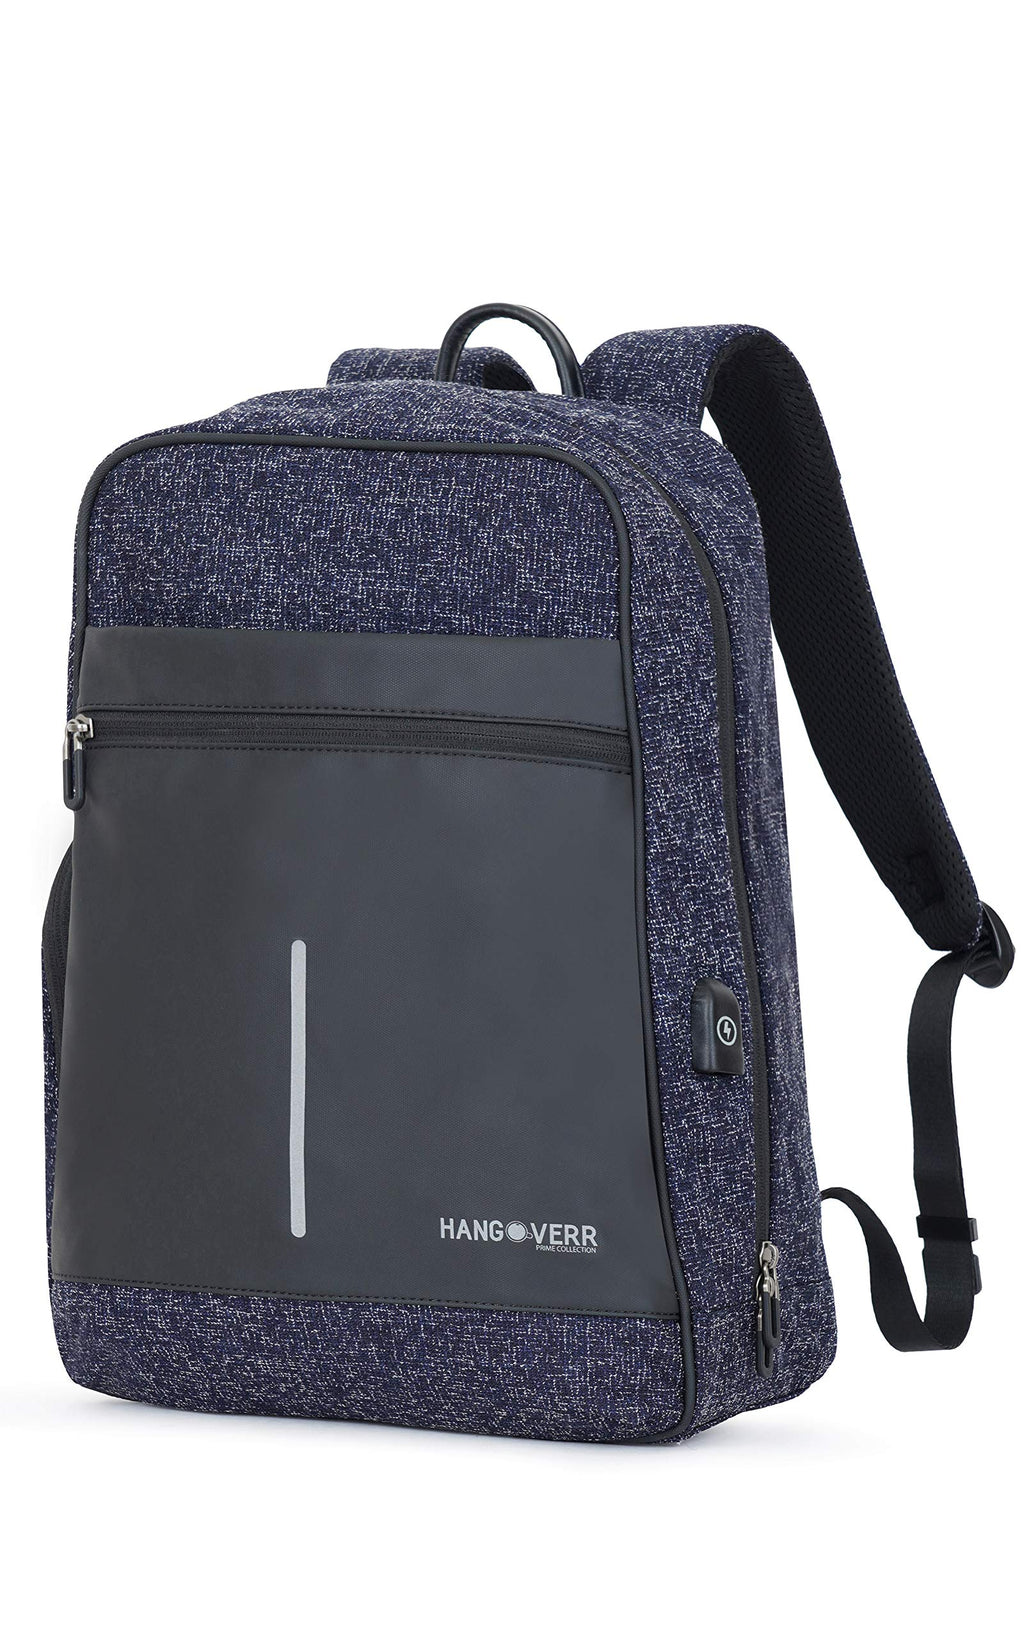 Hangoverr Anti Theft Laptop Backpack with USB Port and Security Pocket - Blue